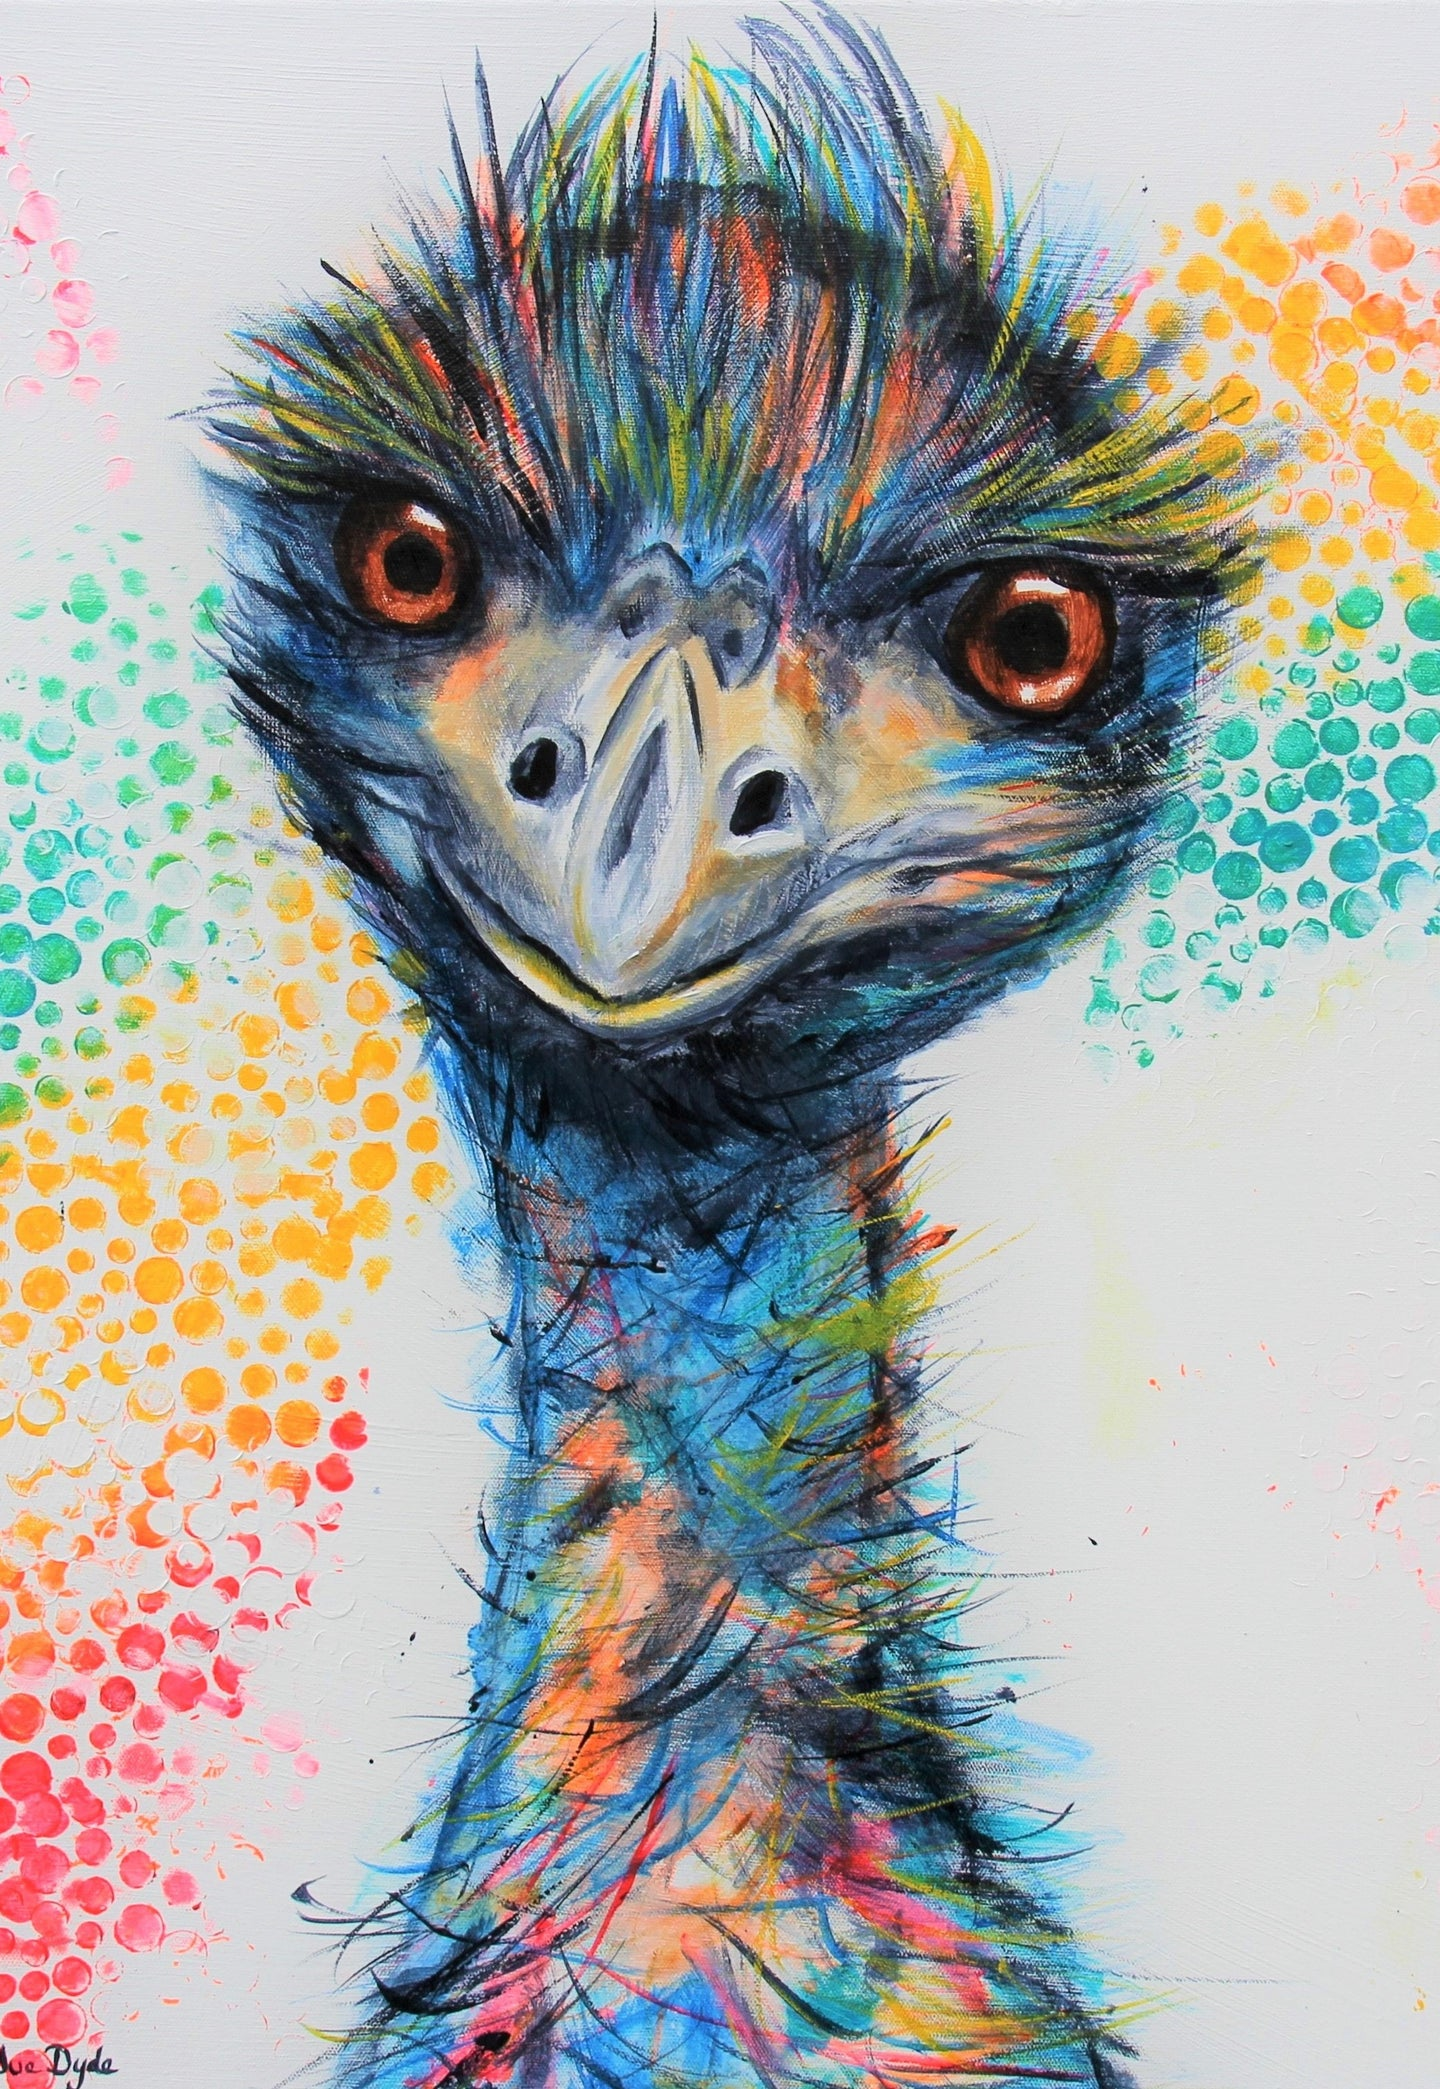 The Rainbow Emu A3 Print Free Shipping